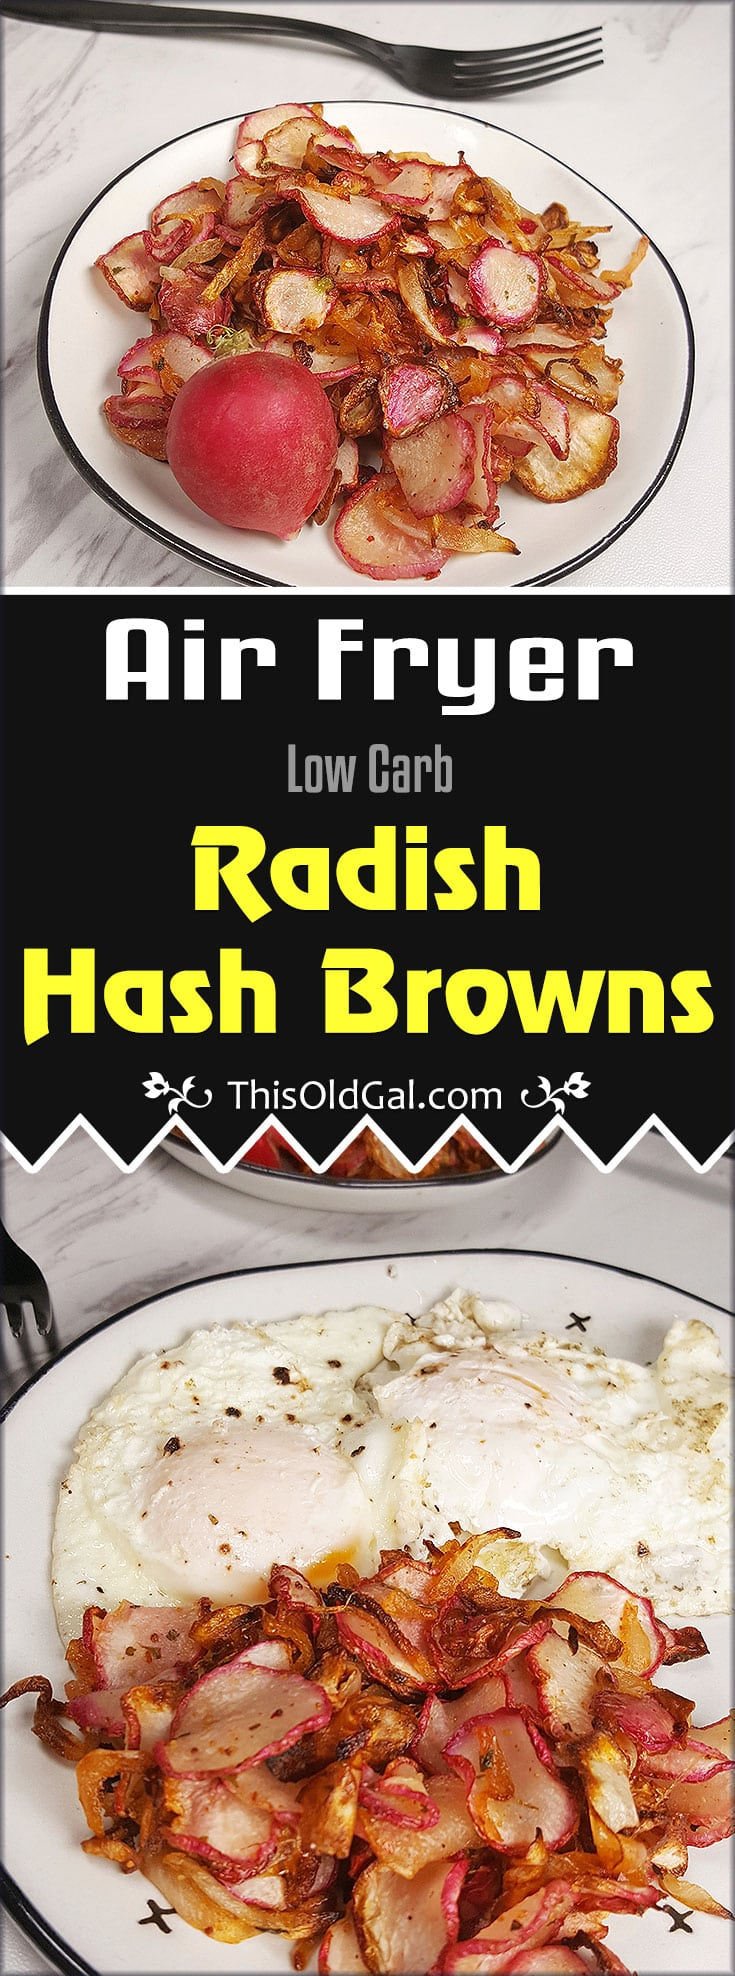 Air Fryer Low Carb Radish Home Fries